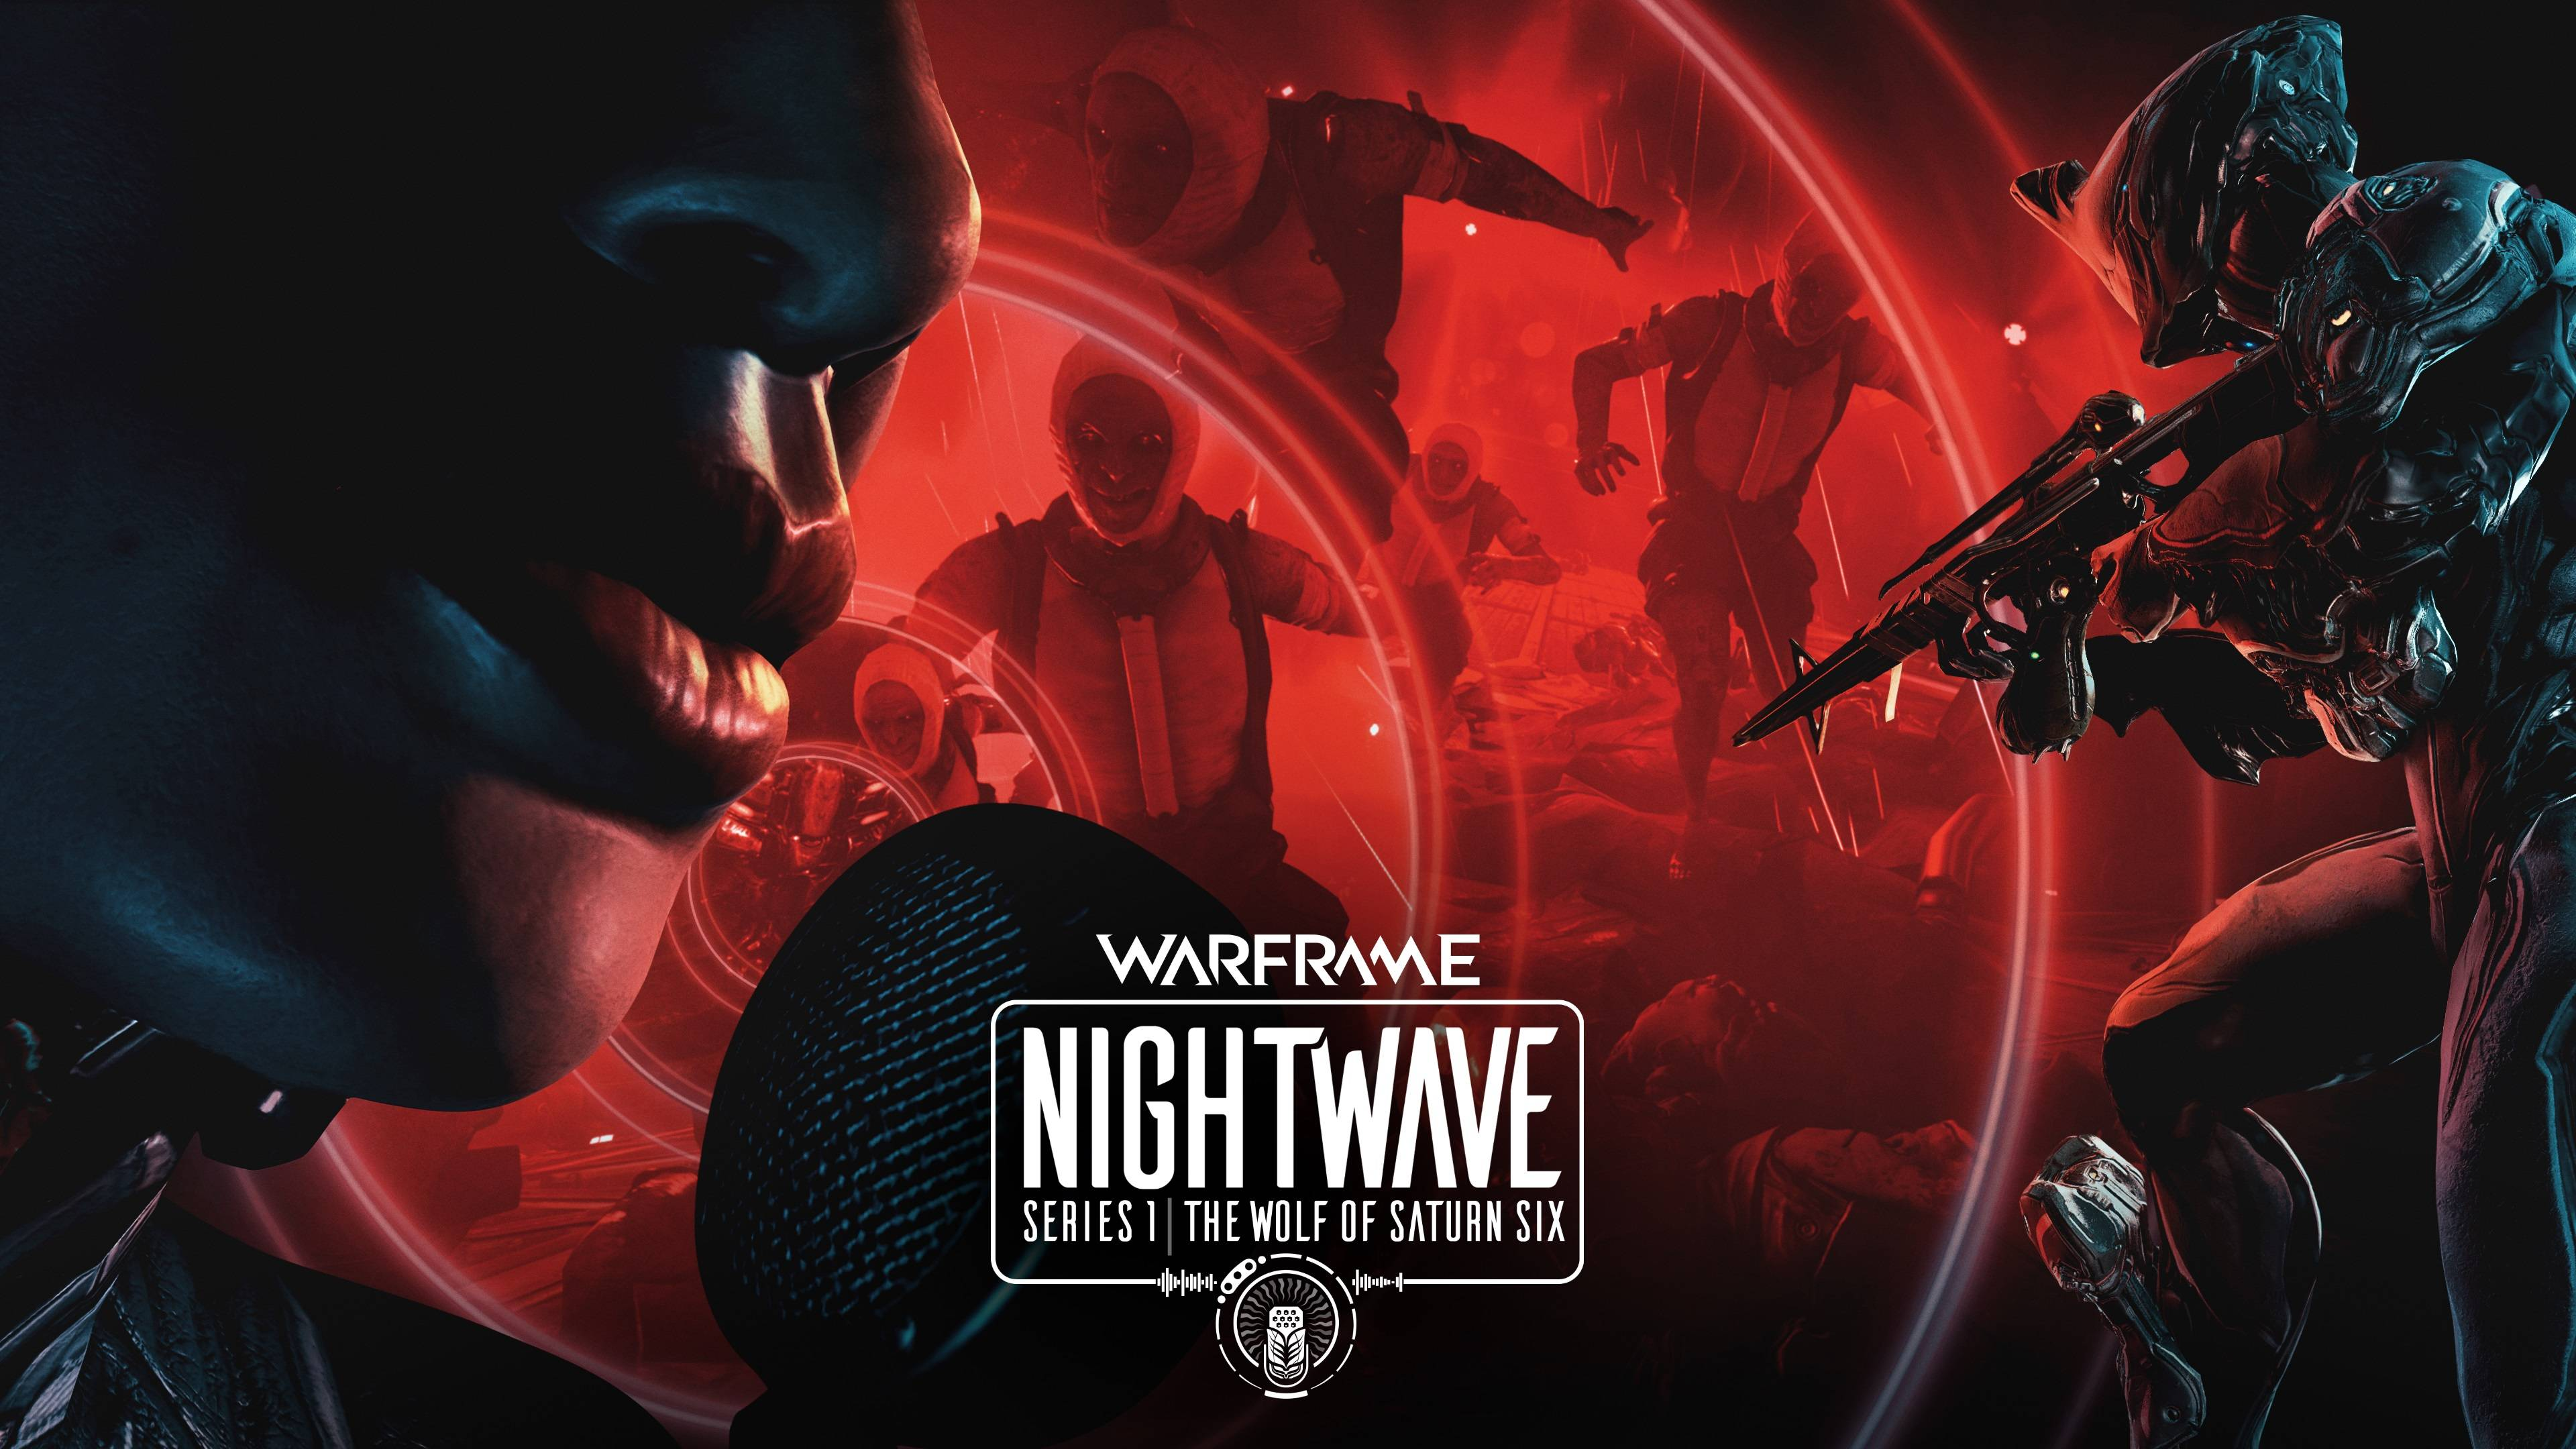 d1adccb6c98a4c92fc9509362637387c - Update 24.3.0 - Nightwave